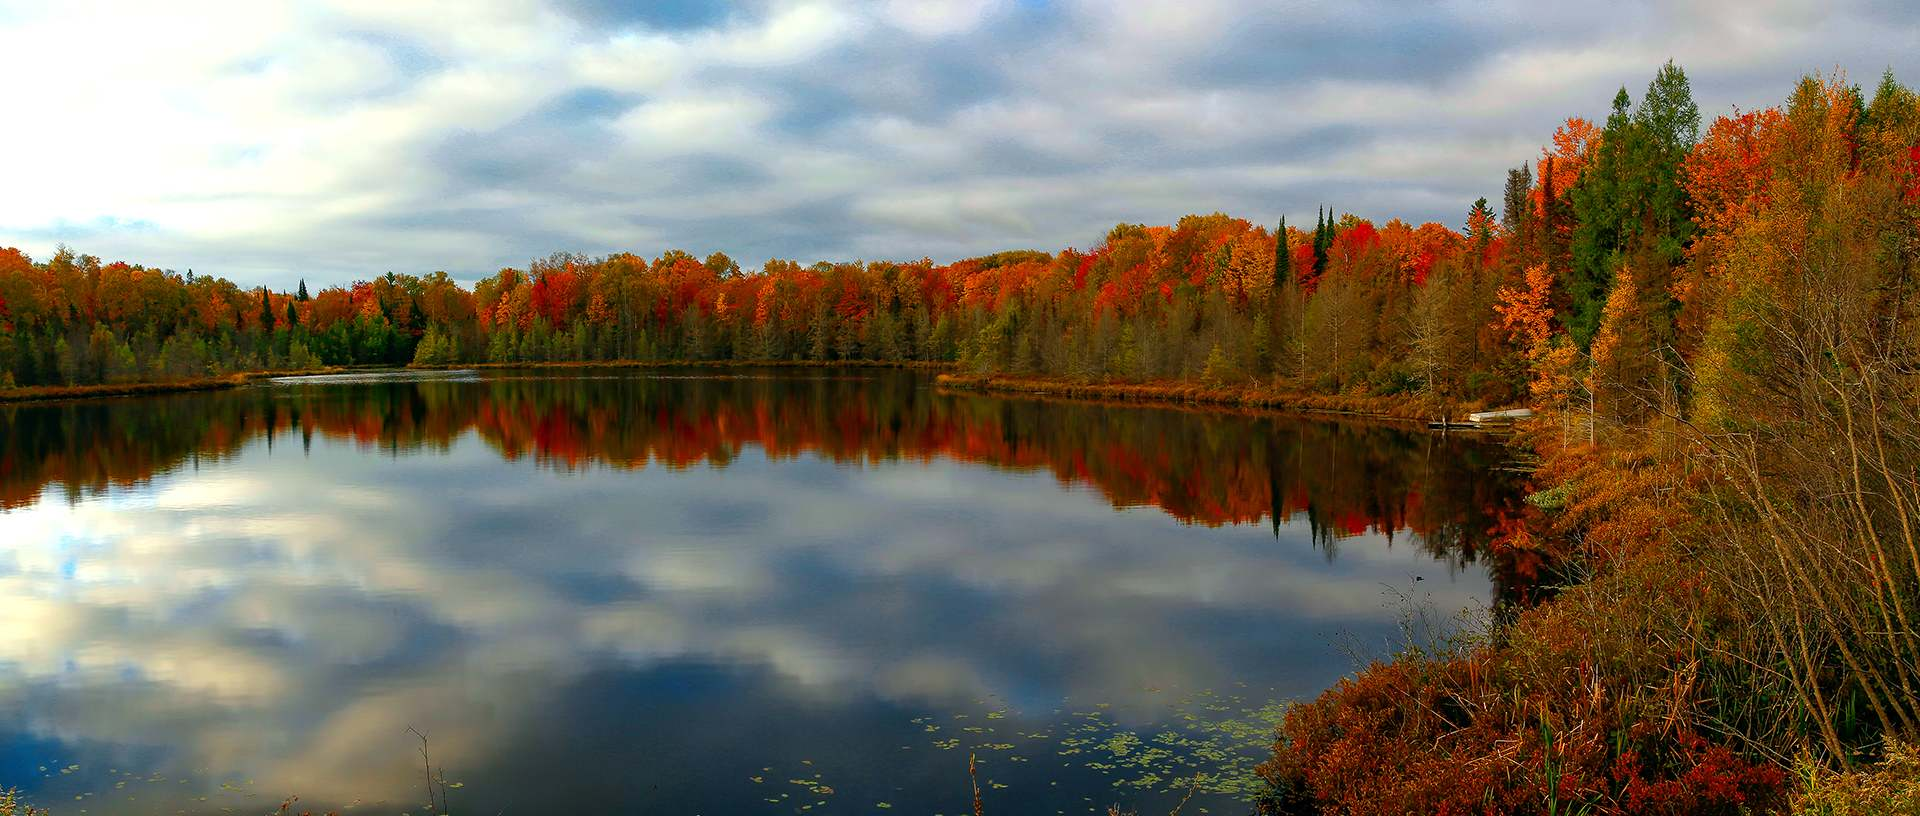 Win a Northwoods getaway & see amazing fall color!